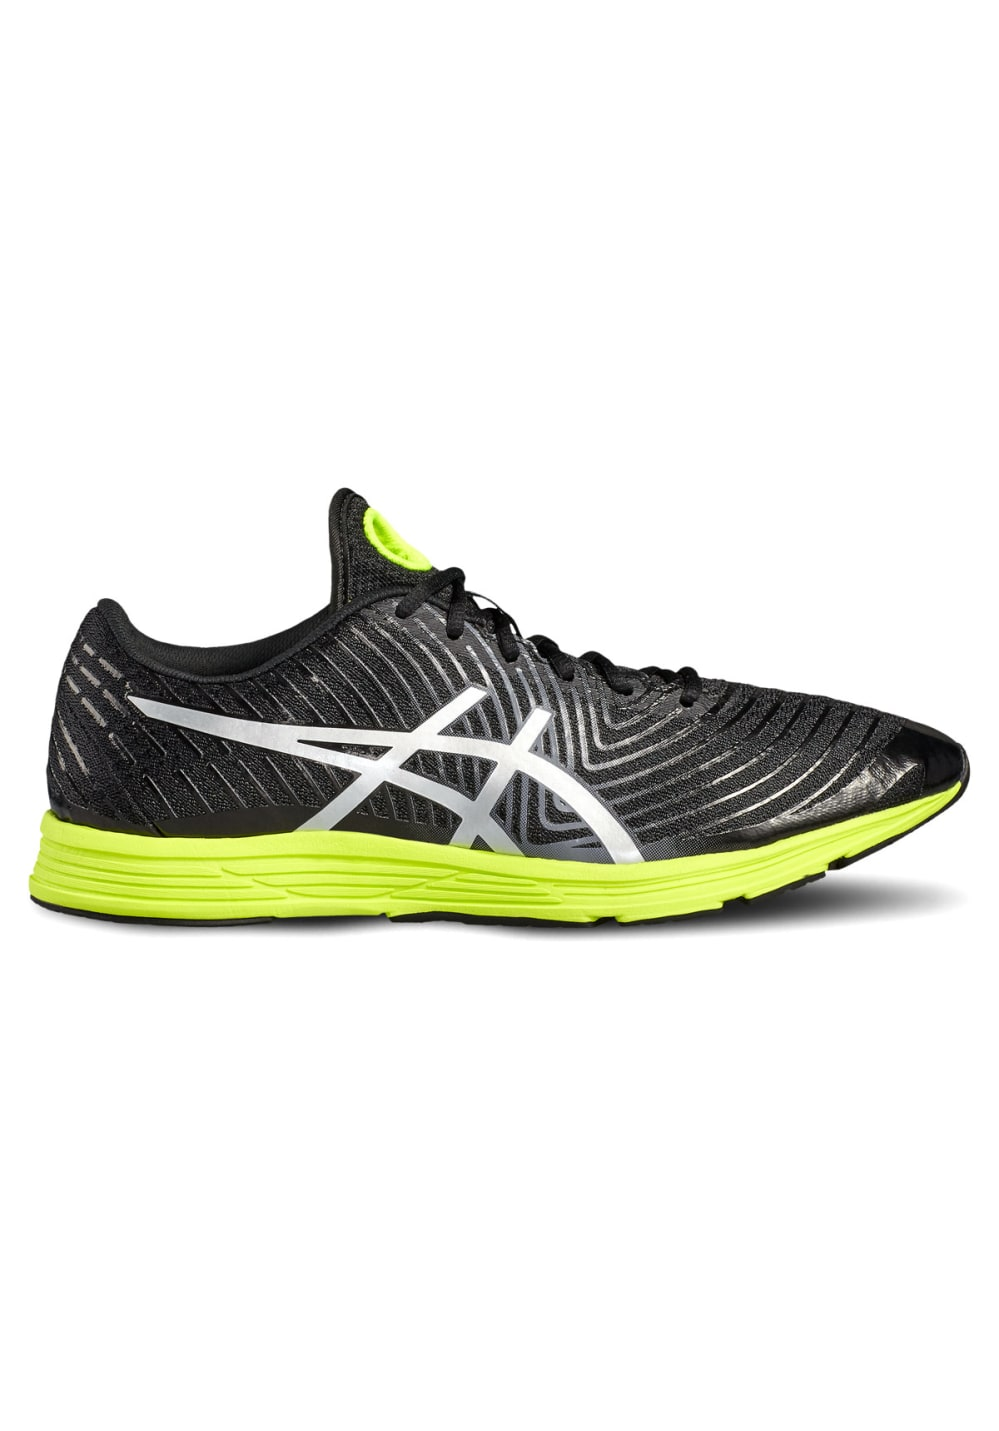 pas mal 07d11 709c3 ASICS GEL-Hyper Tri 3 - Running shoes for Men - Black